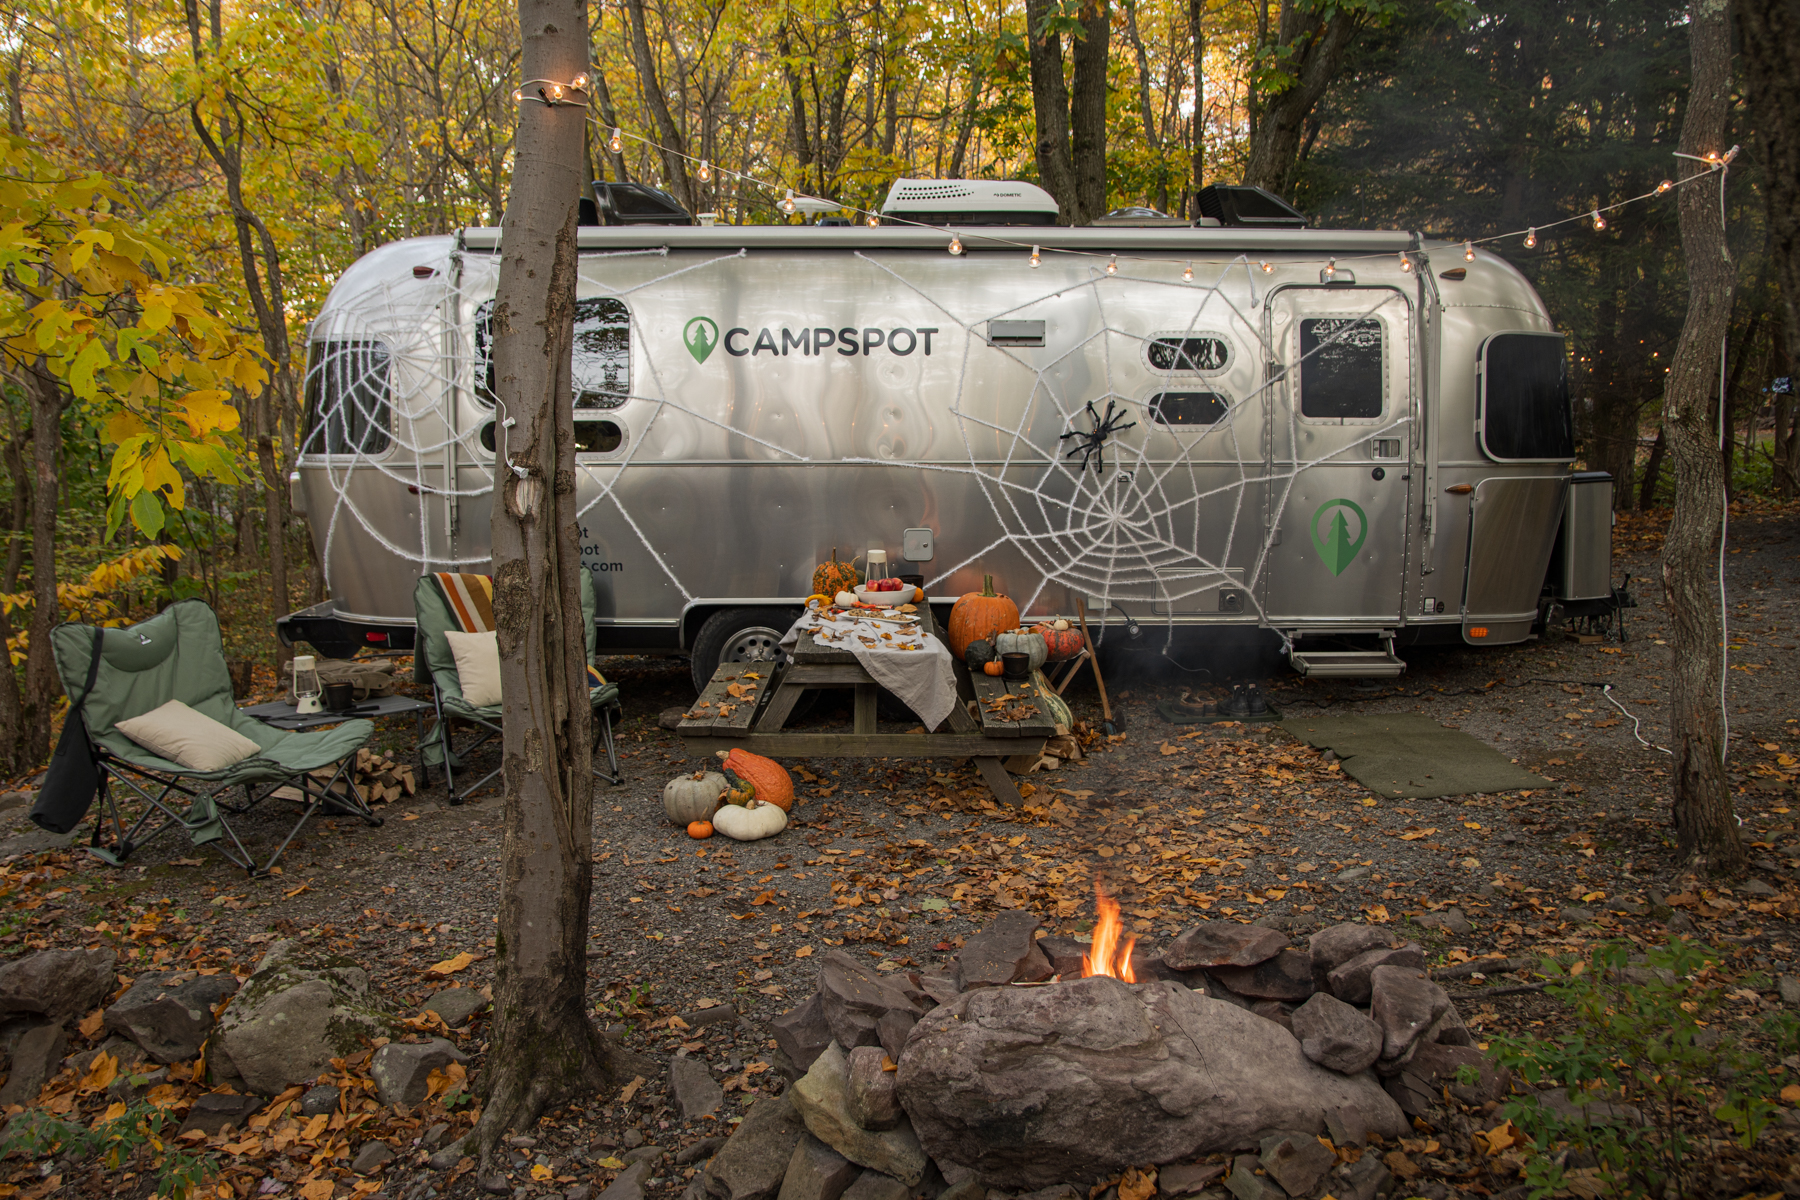 Decorating Your Campspot for Halloween